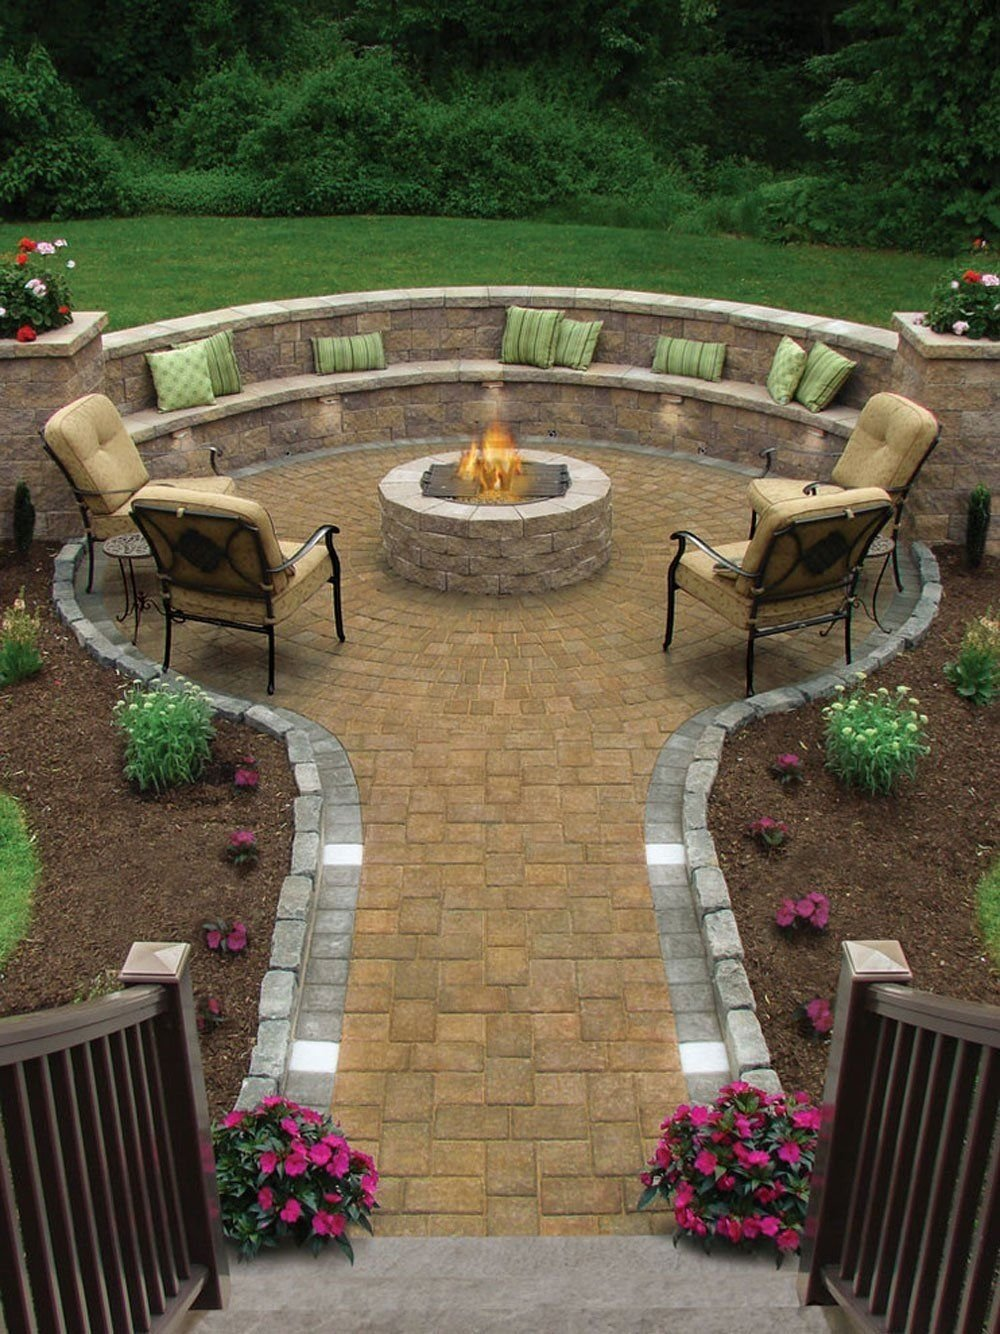 10 Fantastic Outdoor Patio Ideas With Fire Pit 17 of the most amazing seating area around the fire pit ever 3 2020